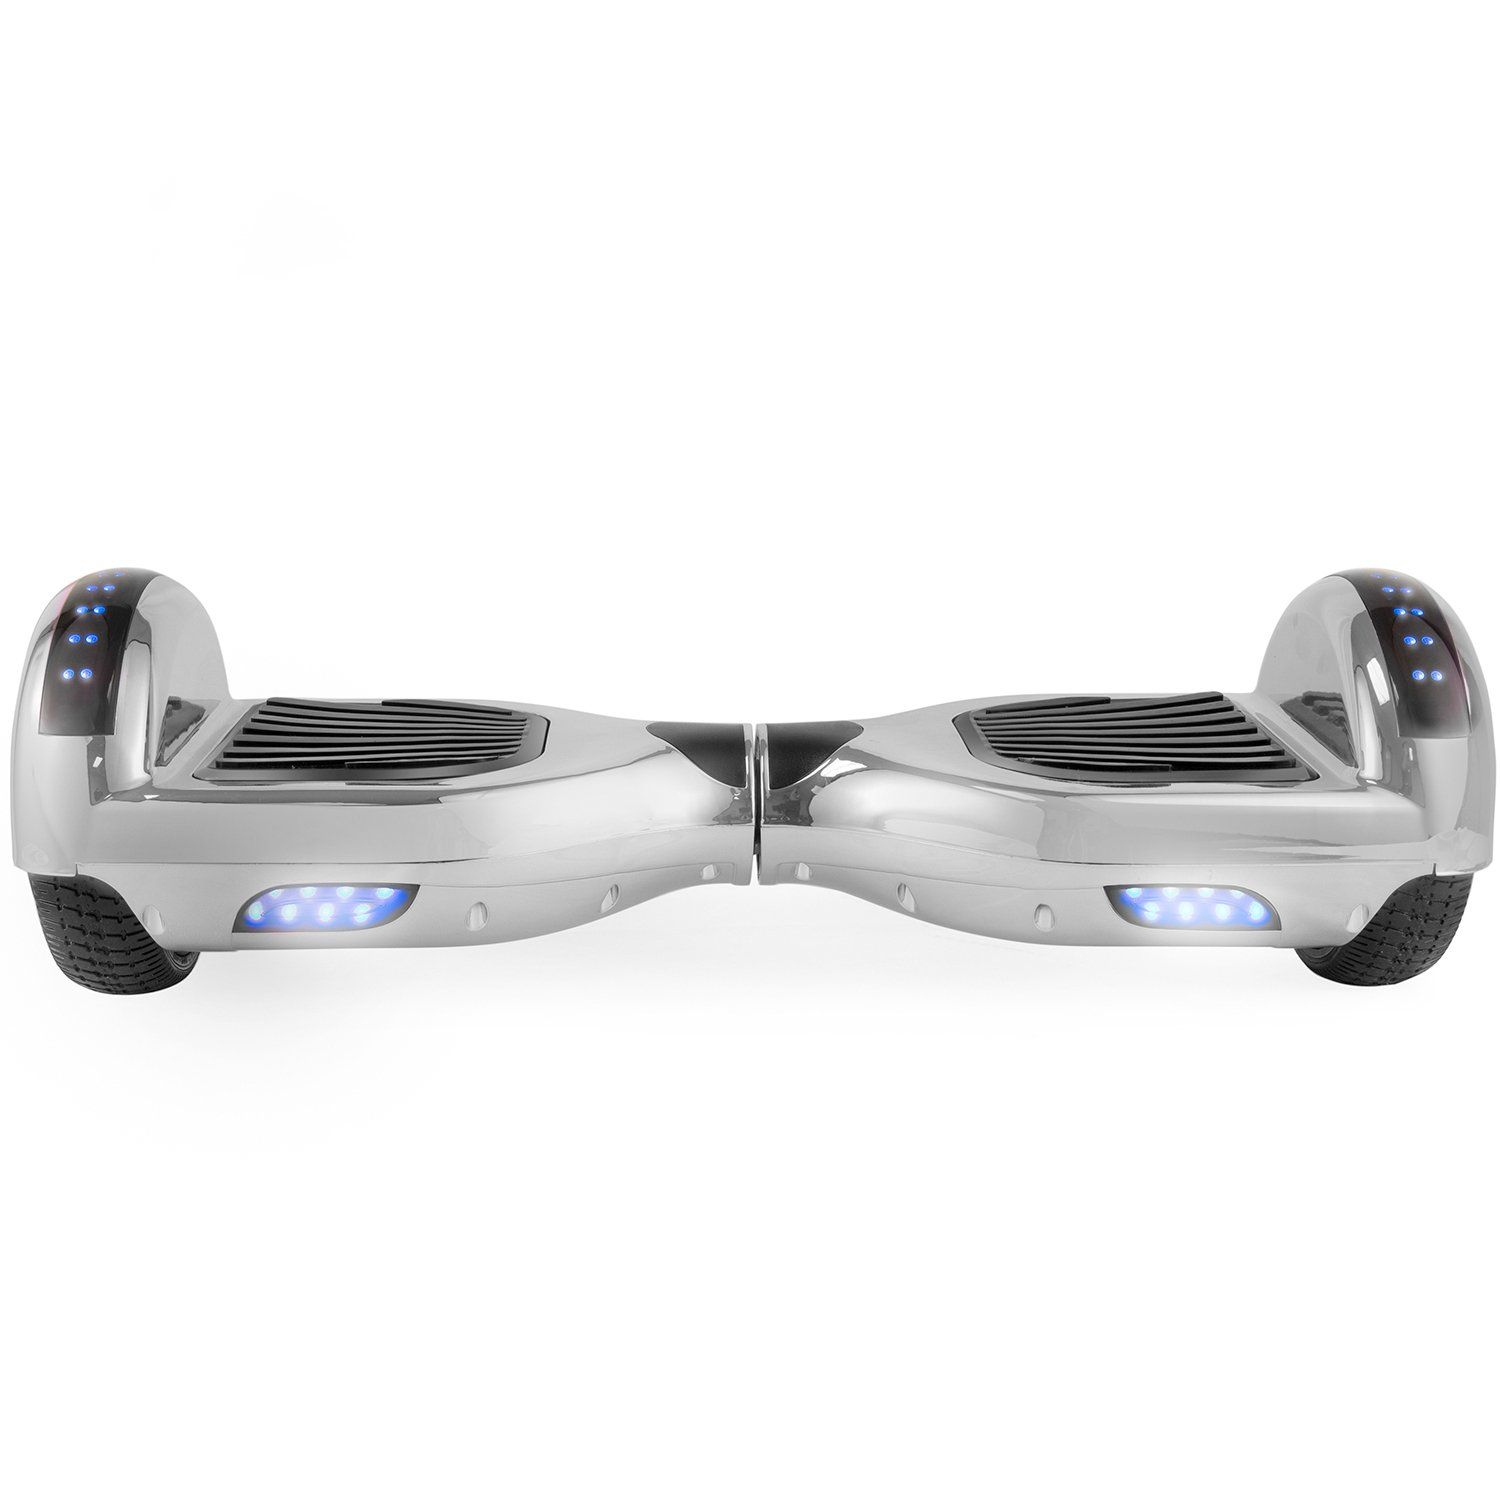 Z1 Plus Silver Safe Hoverboard UL2272 certified with Bluetooth Speaker Free Shipping. - HoverBoard 4sale